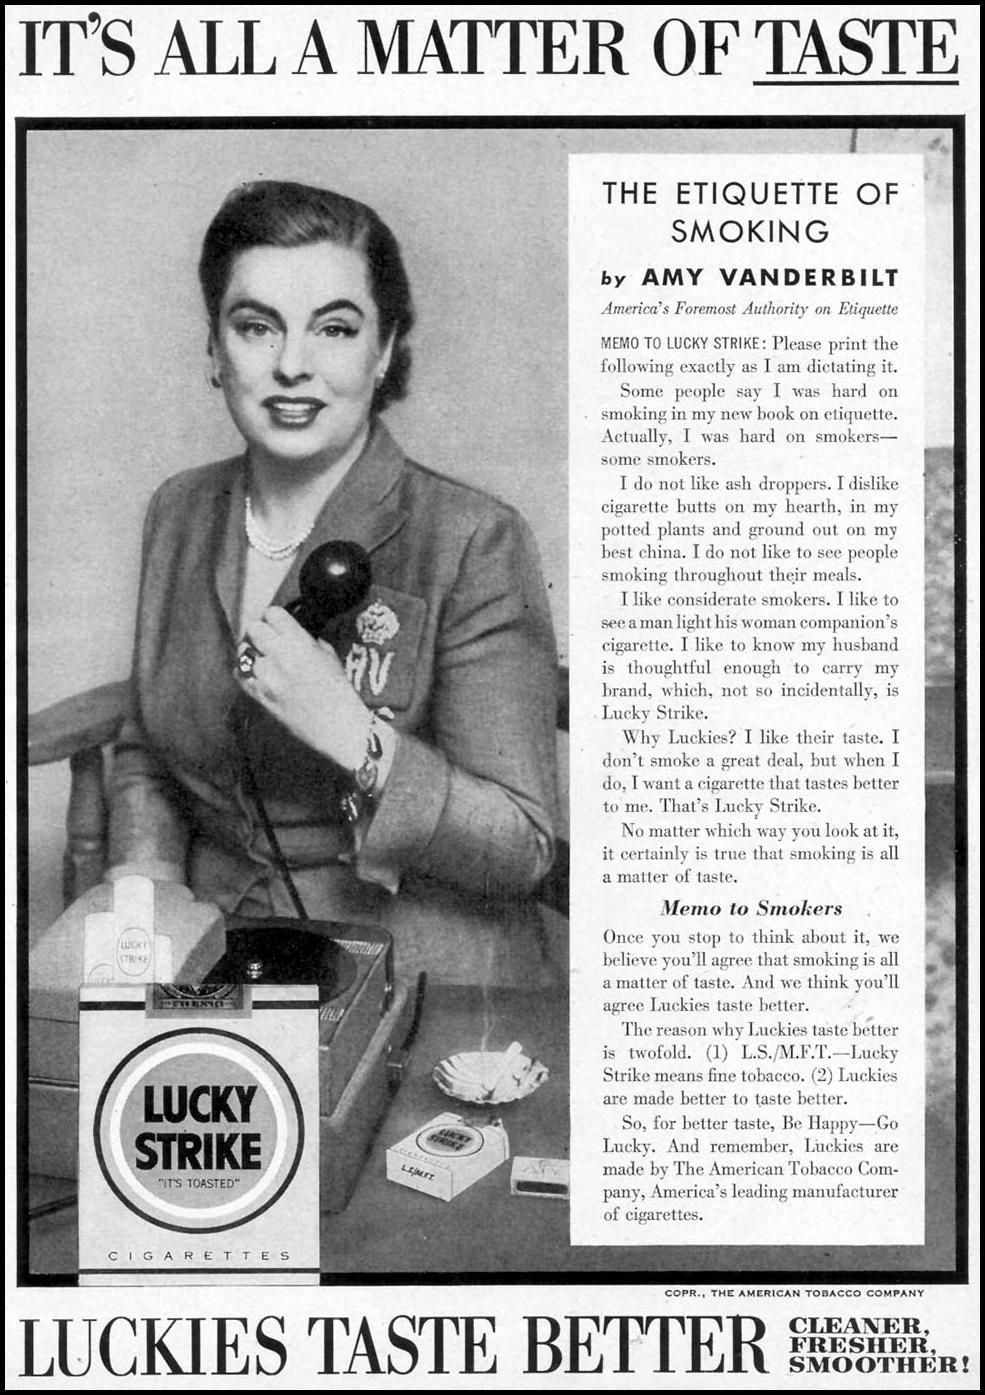 LUCKY STRIKE CIGARETTES WOMAN'S DAY 03/01/1954 p. 113